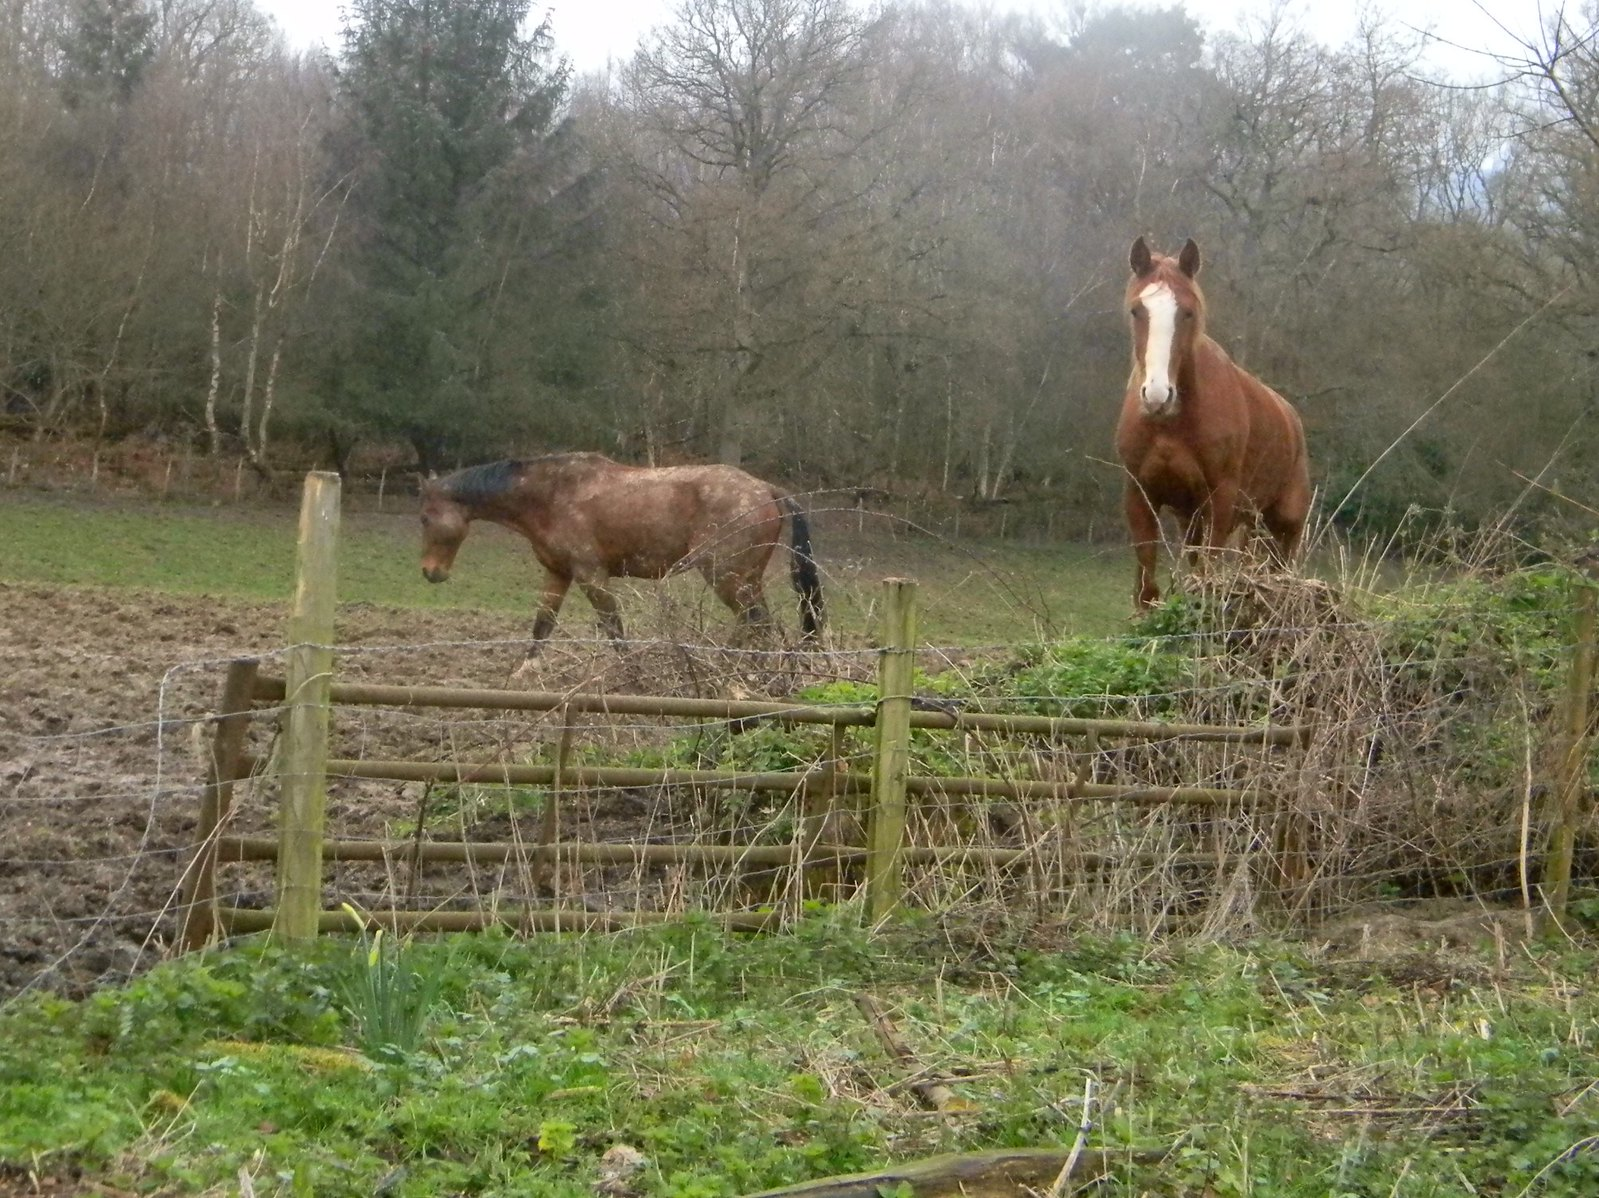 Horses in a field Champion the Wonder Horse again...is he following me? Cowden to Hever